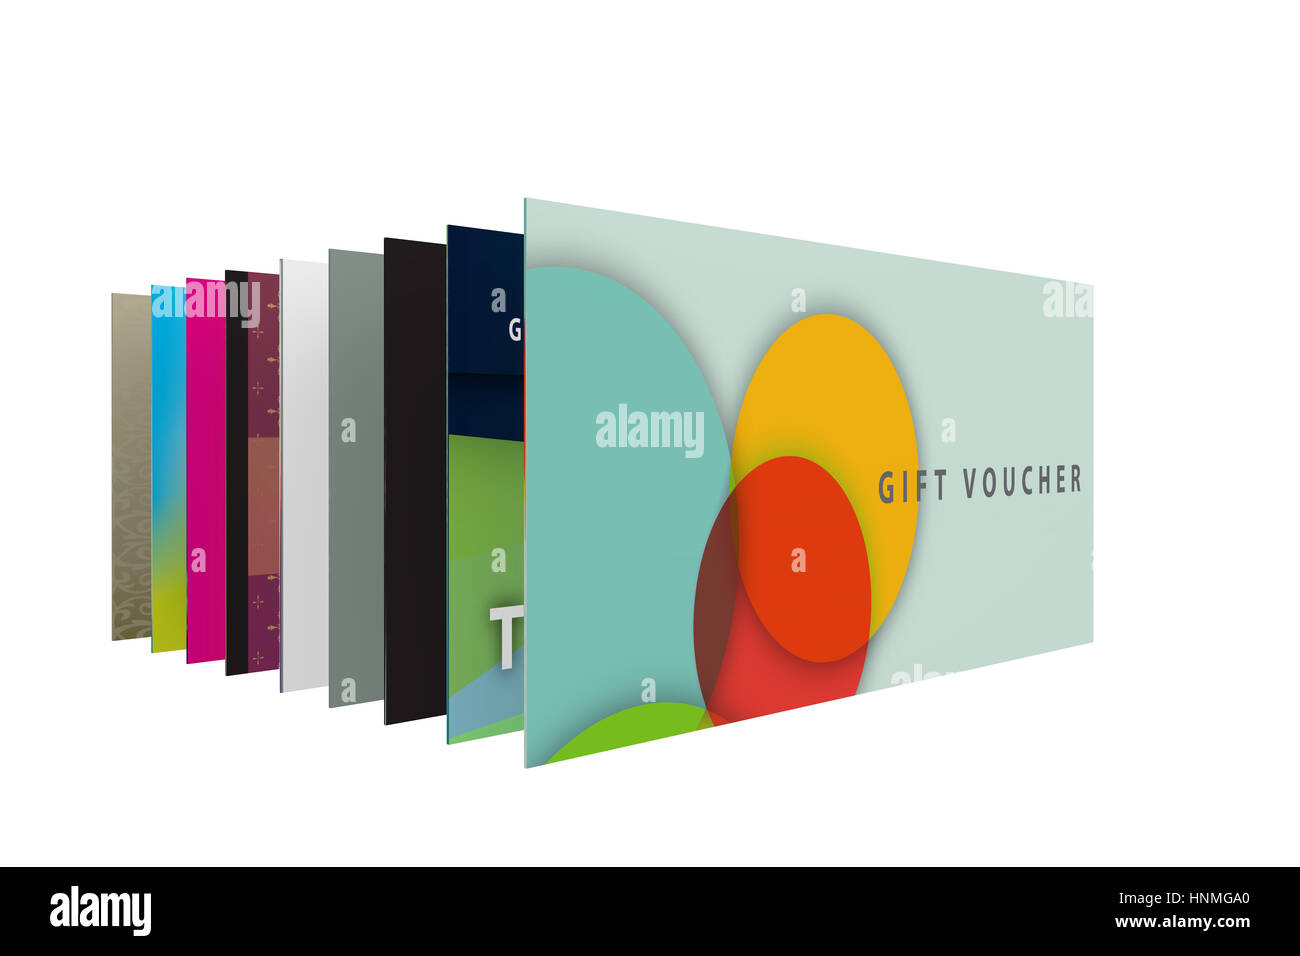 3d render of a set of designs for gift vouchers - Stock Image